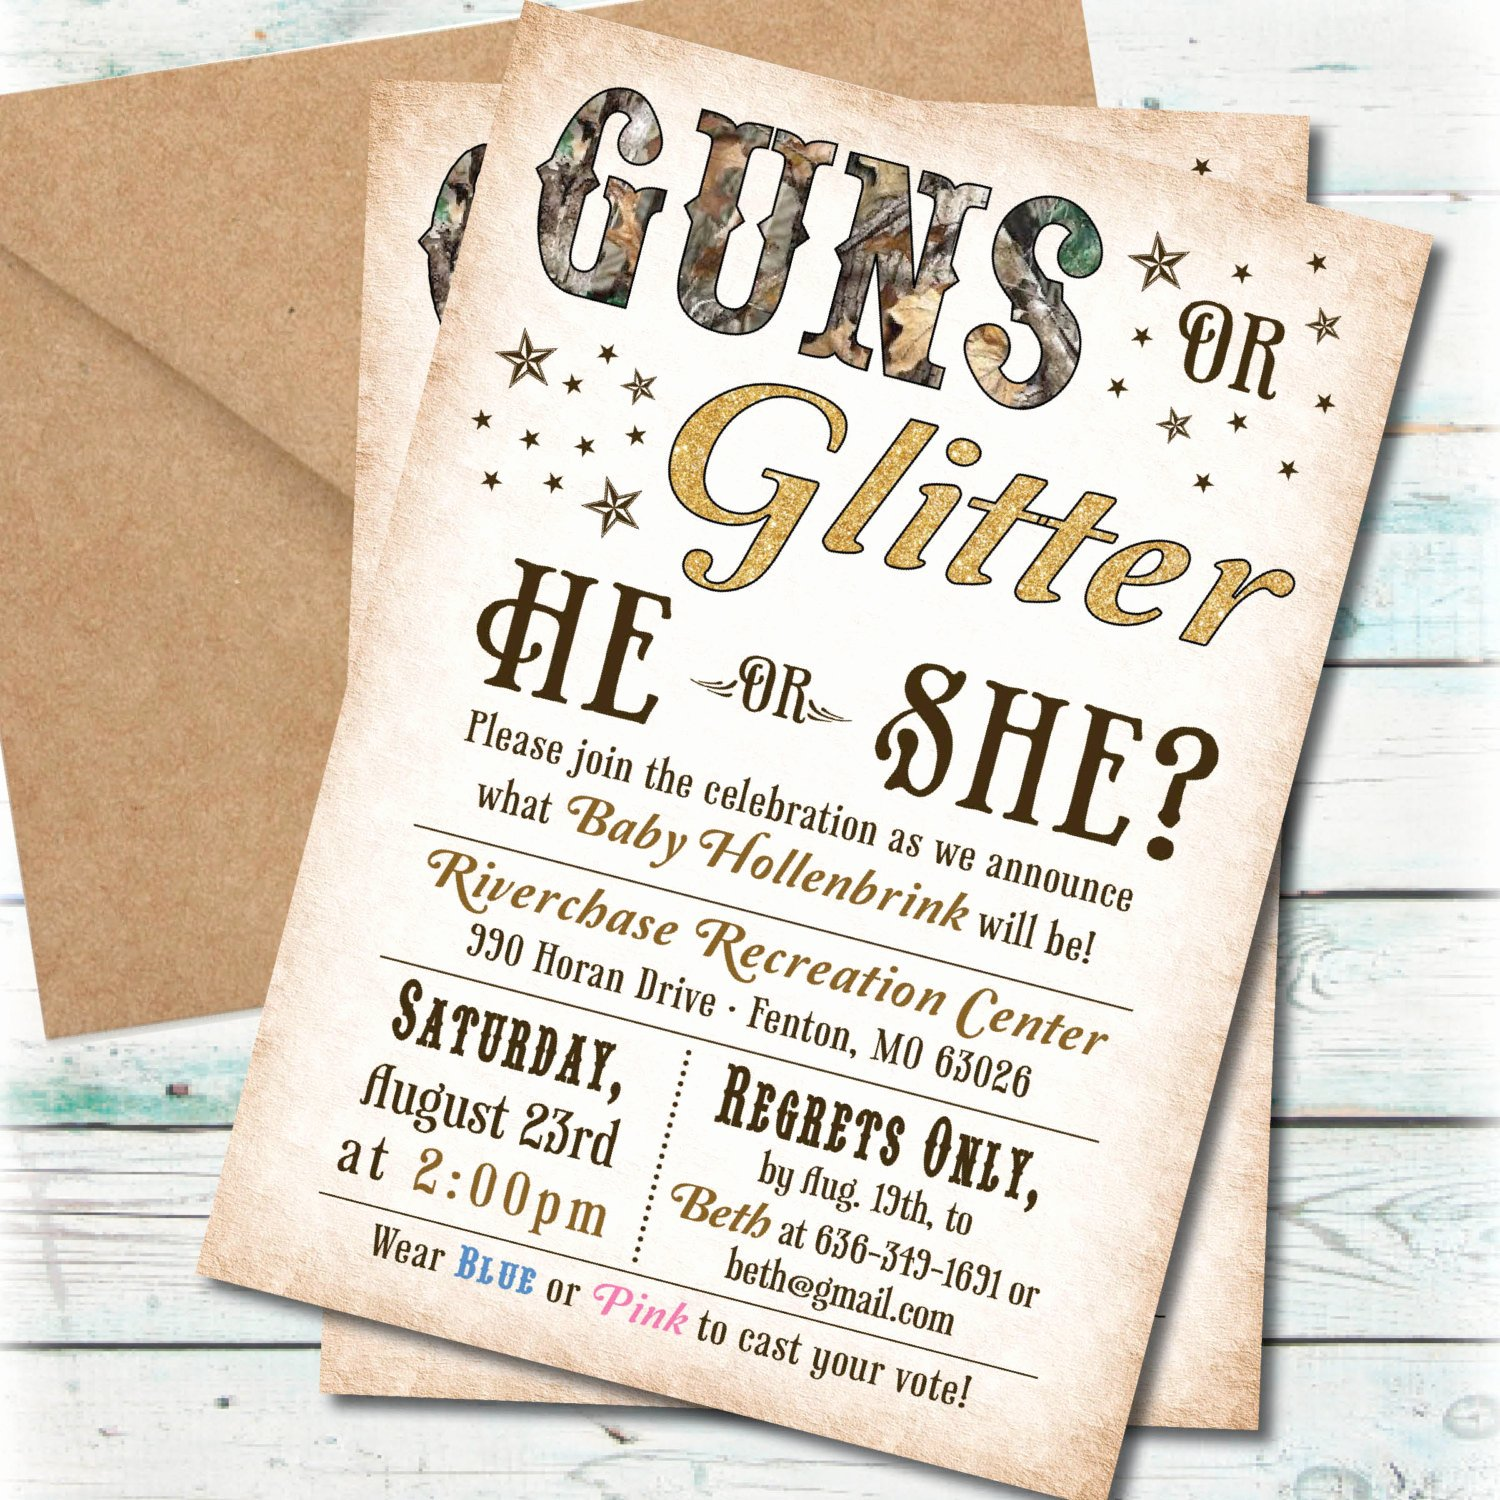 Gender Reveal Party Invitation Ideas Awesome Printable Guns or Glitter Gender Reveal Party Invitation